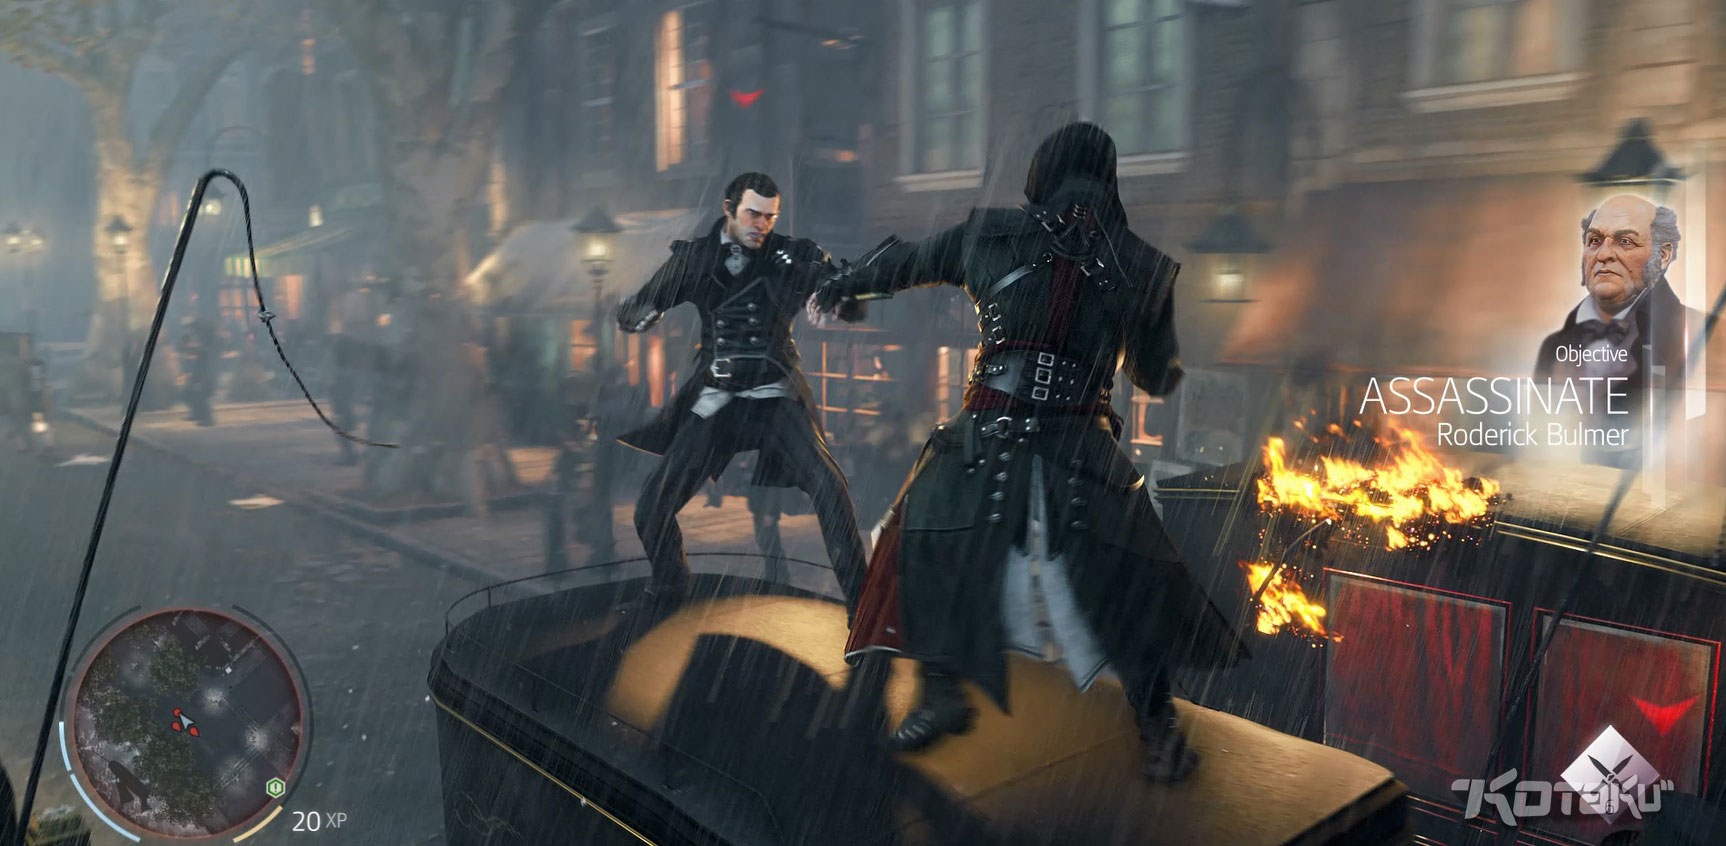 Assassin's Creed 0212 2 kotaku